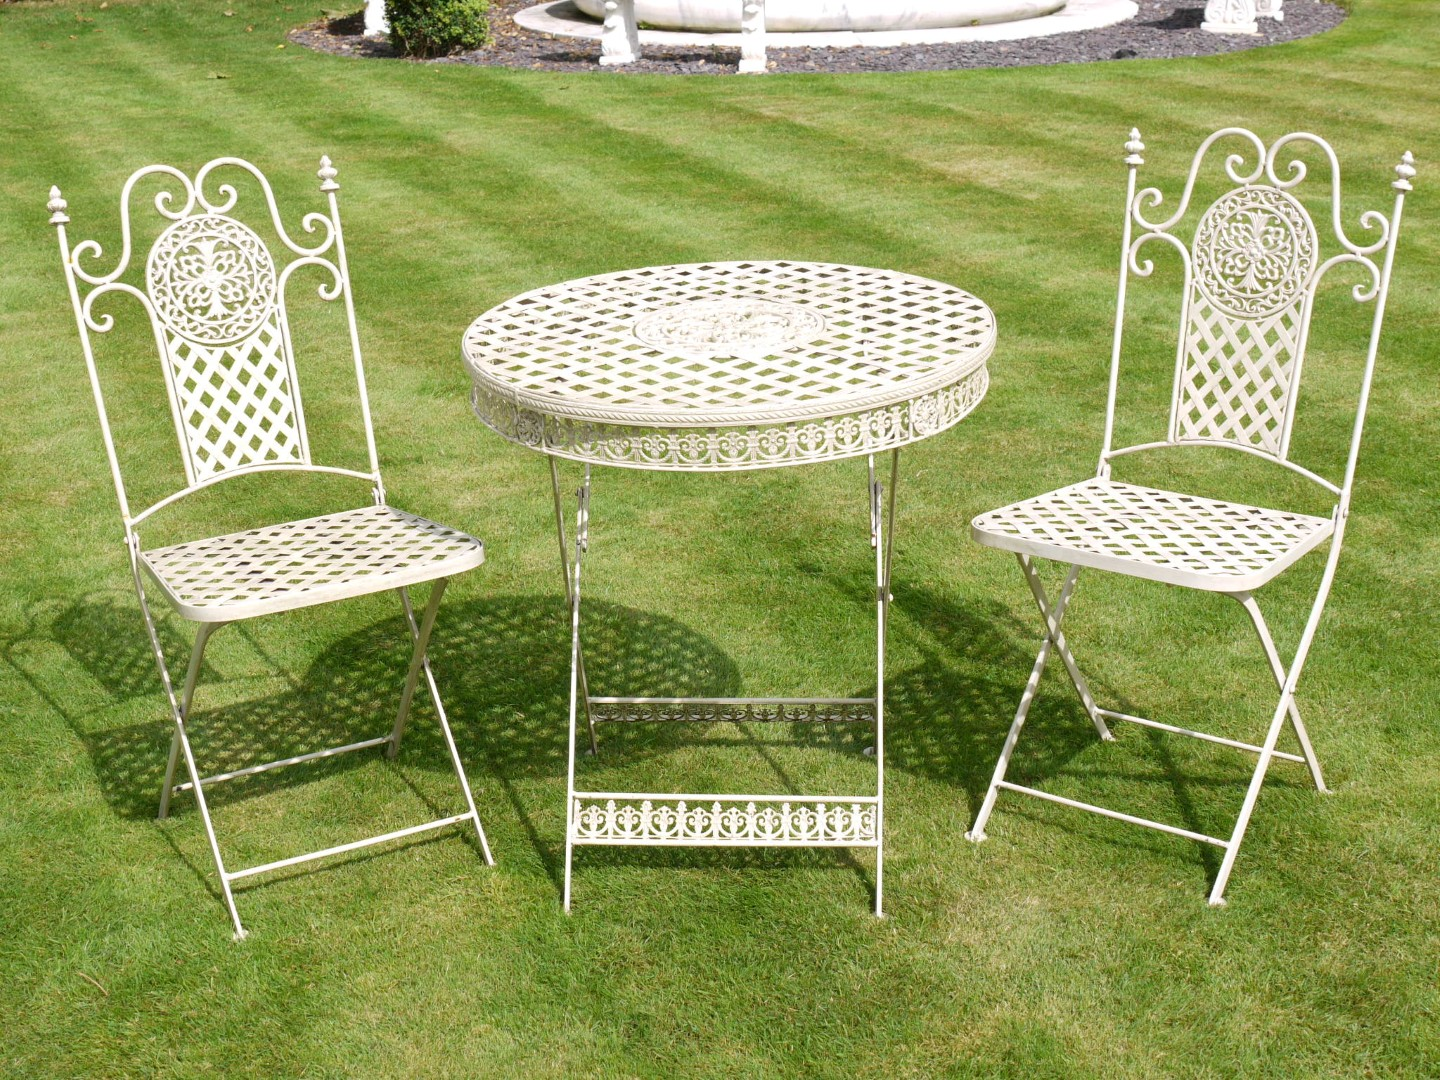 Wrought Iron Cream Bistro Set Somerset Reclamation Radstock Bath